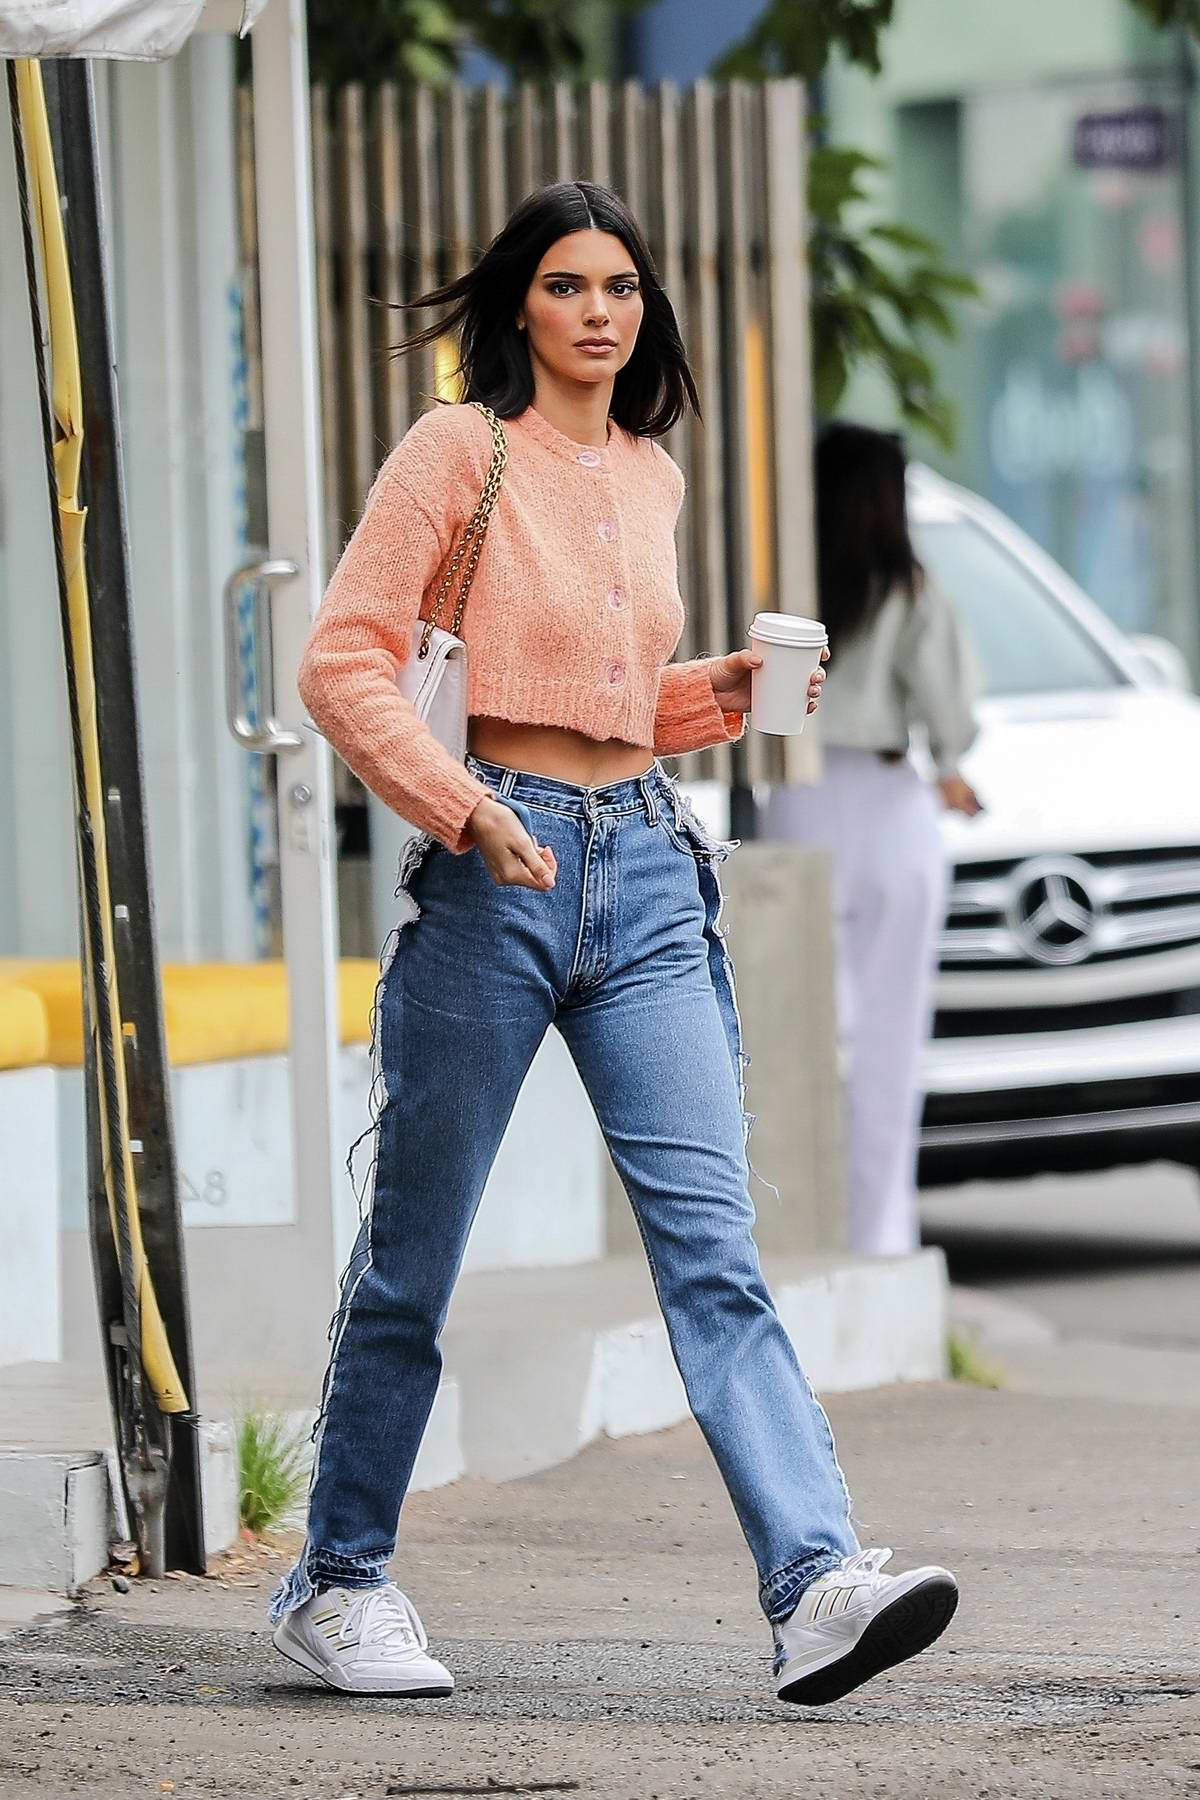 Kendall Jenner looks trendy in peach crop top and reversed jeans while out for coffee in West Hollywood, Los Angeles